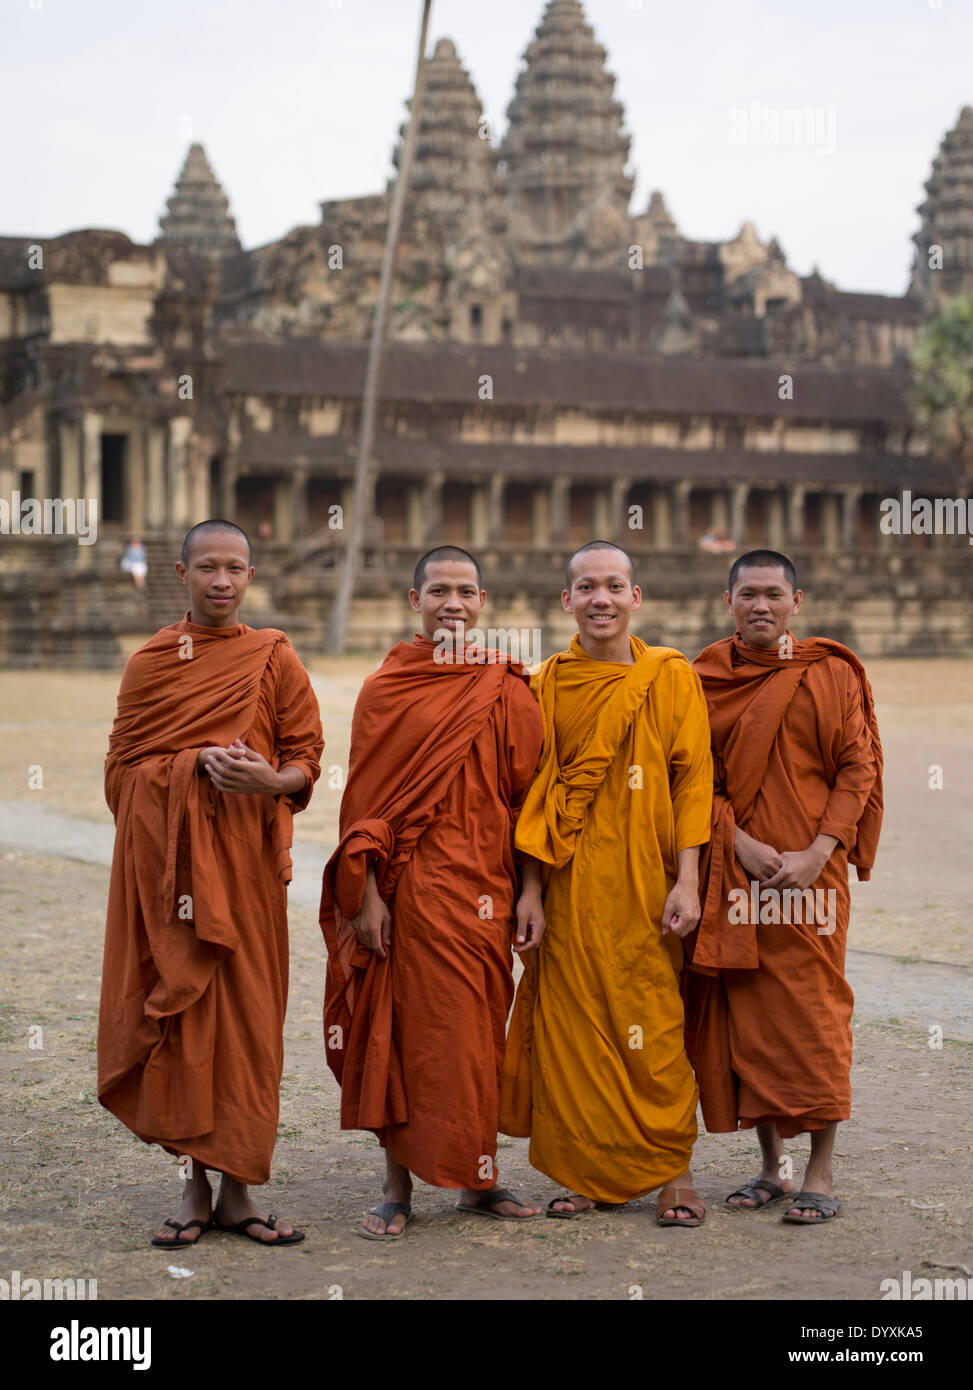 Buddhist monks in traditional robes at Angkor Wat, Siem Reap, Cambodia - Stock Image